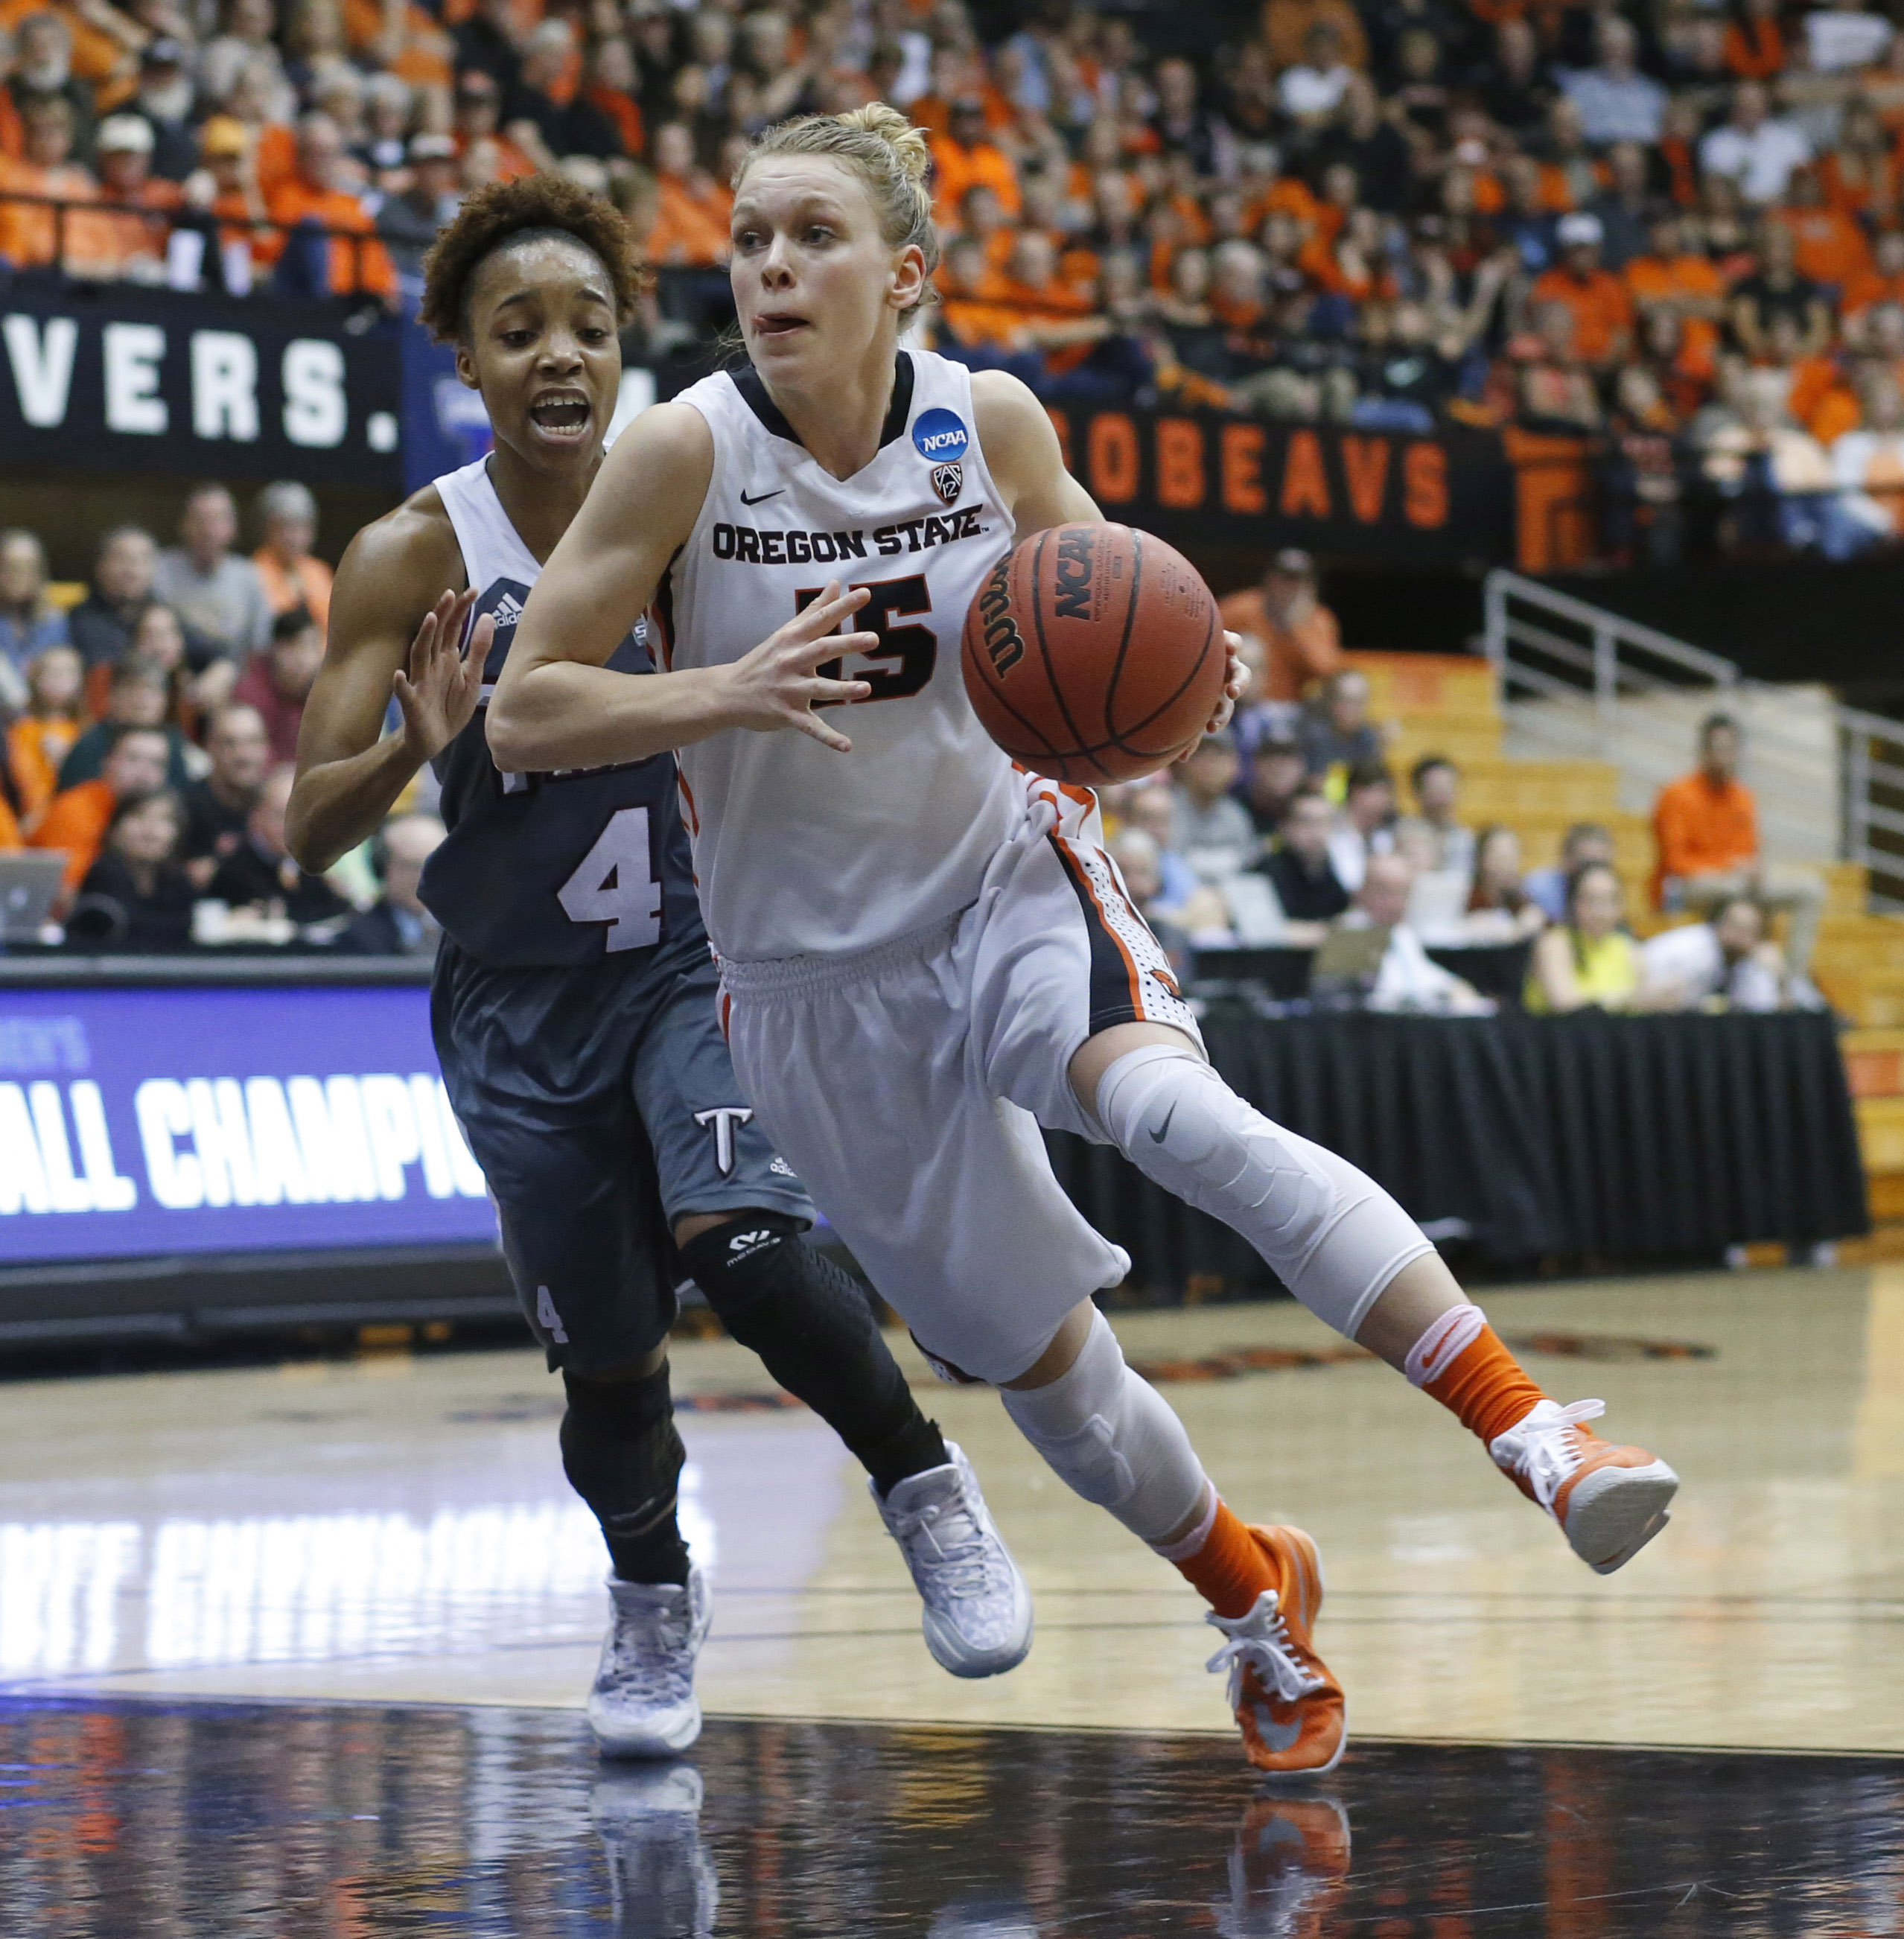 Oregon State's Jamie Weisner, center, drives past Troy's Ashley Beverly Keley in the first half of a first round women's college basketball game in the NCAA Tournament in Corvallis, Ore., on Friday March 18, 2016 (AP Photo/Timothy J. Gonzalez)